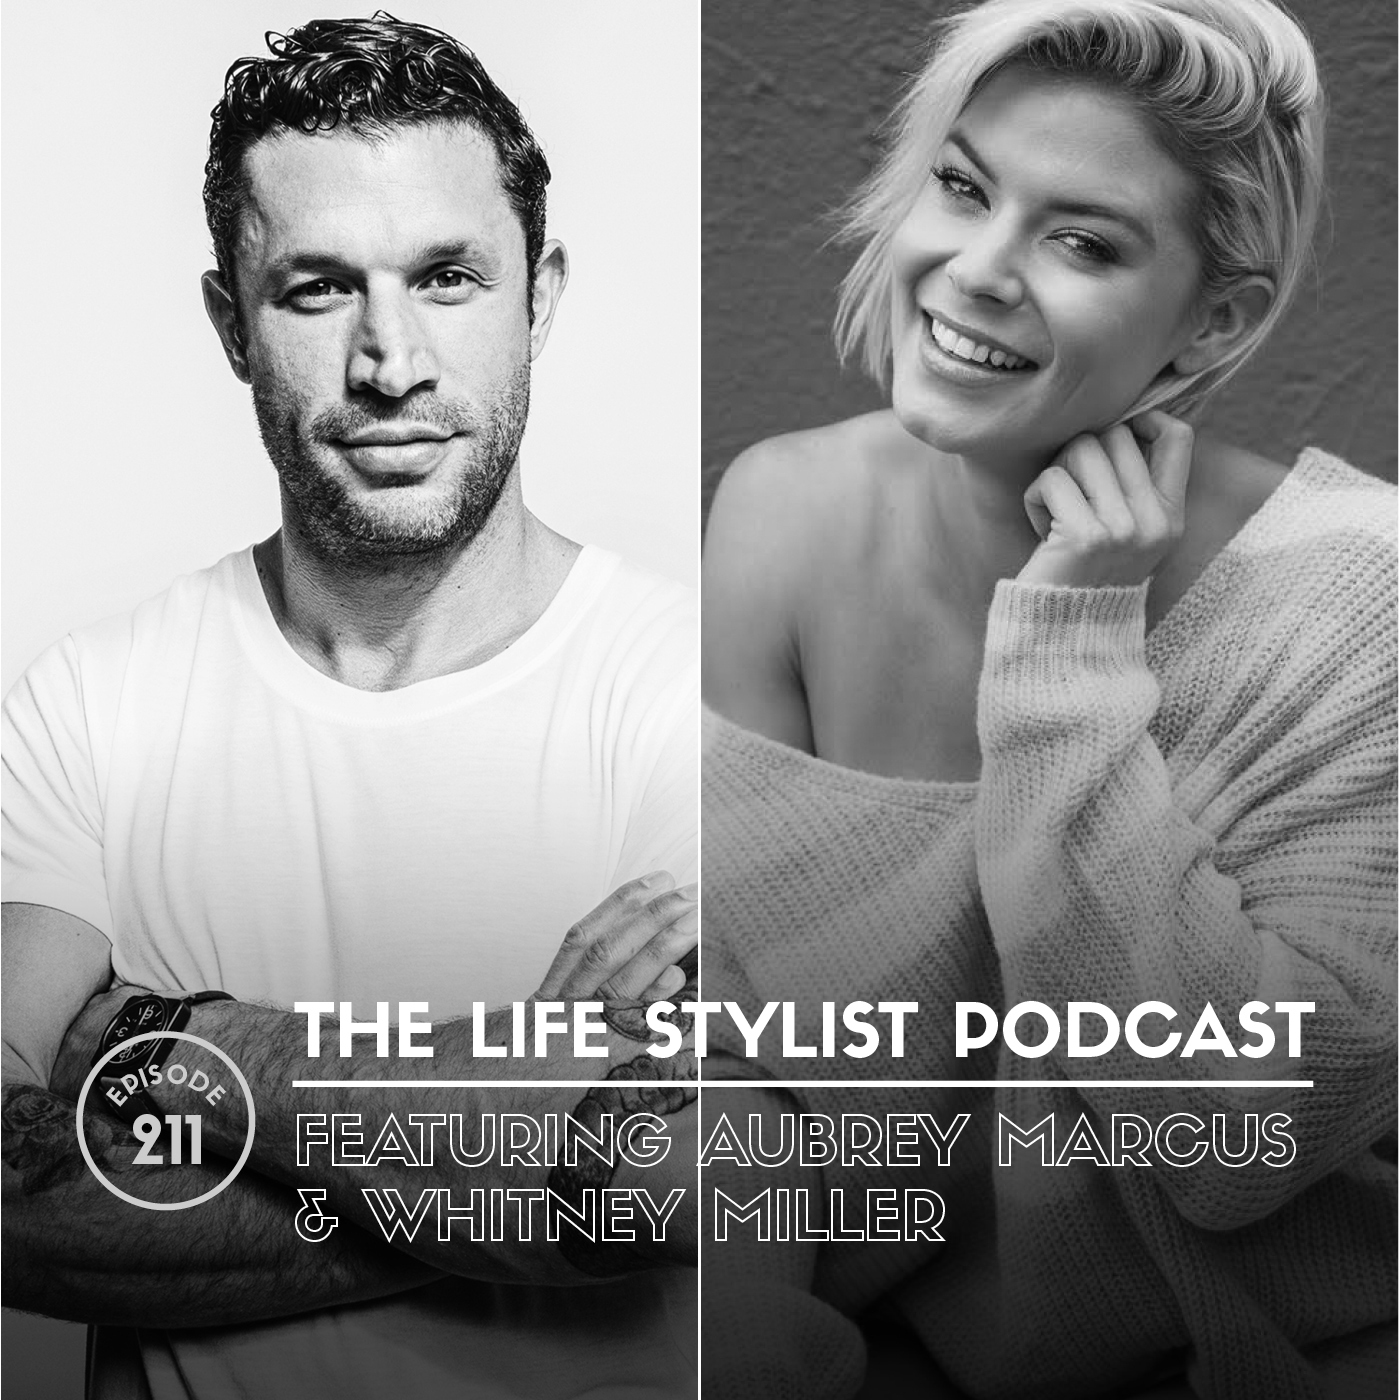 Aubrey Marcus  is the founder and CEO of Onnit, a lifestyle brand based on a holistic health philosophy he calls Total Human Optimization.  Aubrey currently hosts the Aubrey Marcus Podcast, a motivational destination for conversations with the brightest minds in athletics, business, science, relationships and spirituality with over 10MM downloads on iTunes. He regularly provides commentary to outlets like Entrepreneur, Forbes, The Doctors, and The Joe Rogan Experience and is the author of the NYT bestseller Own The Day, Own Your Life from HarperCollins.    Whitney Miller  is a former Miss United States and sports anchor who found her true calling helping individuals and couples as a love, sex and relationship coach. Her experiential journey to self-mastery started 5 years ago when she entered into a well publicized open relationship with her fiance, Aubrey Marcus.  Whitney has since joined forces with some of the leading scientists and researchers in the field, and now hosts talks and workshops around the world. She believes that regardless of your relationship construct, monogamous or open, there are always ways to create more love, better sex, and healthier, happier relationships.